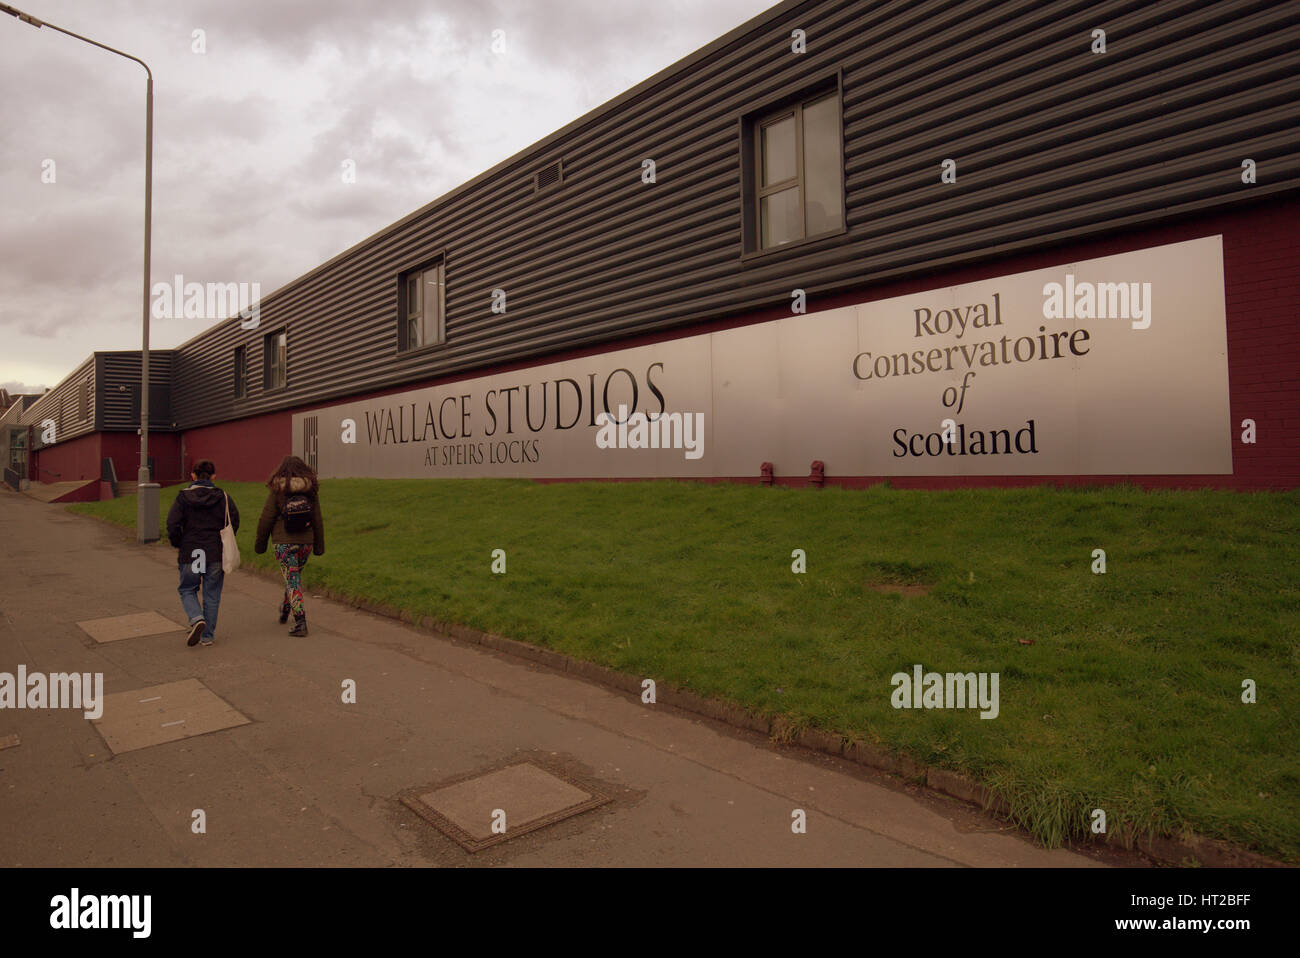 The Royal Conservatoire of Scotland. The Wallace Studios at Speirs Locks was designed by award-winning Malcolm Fraser - Stock Image